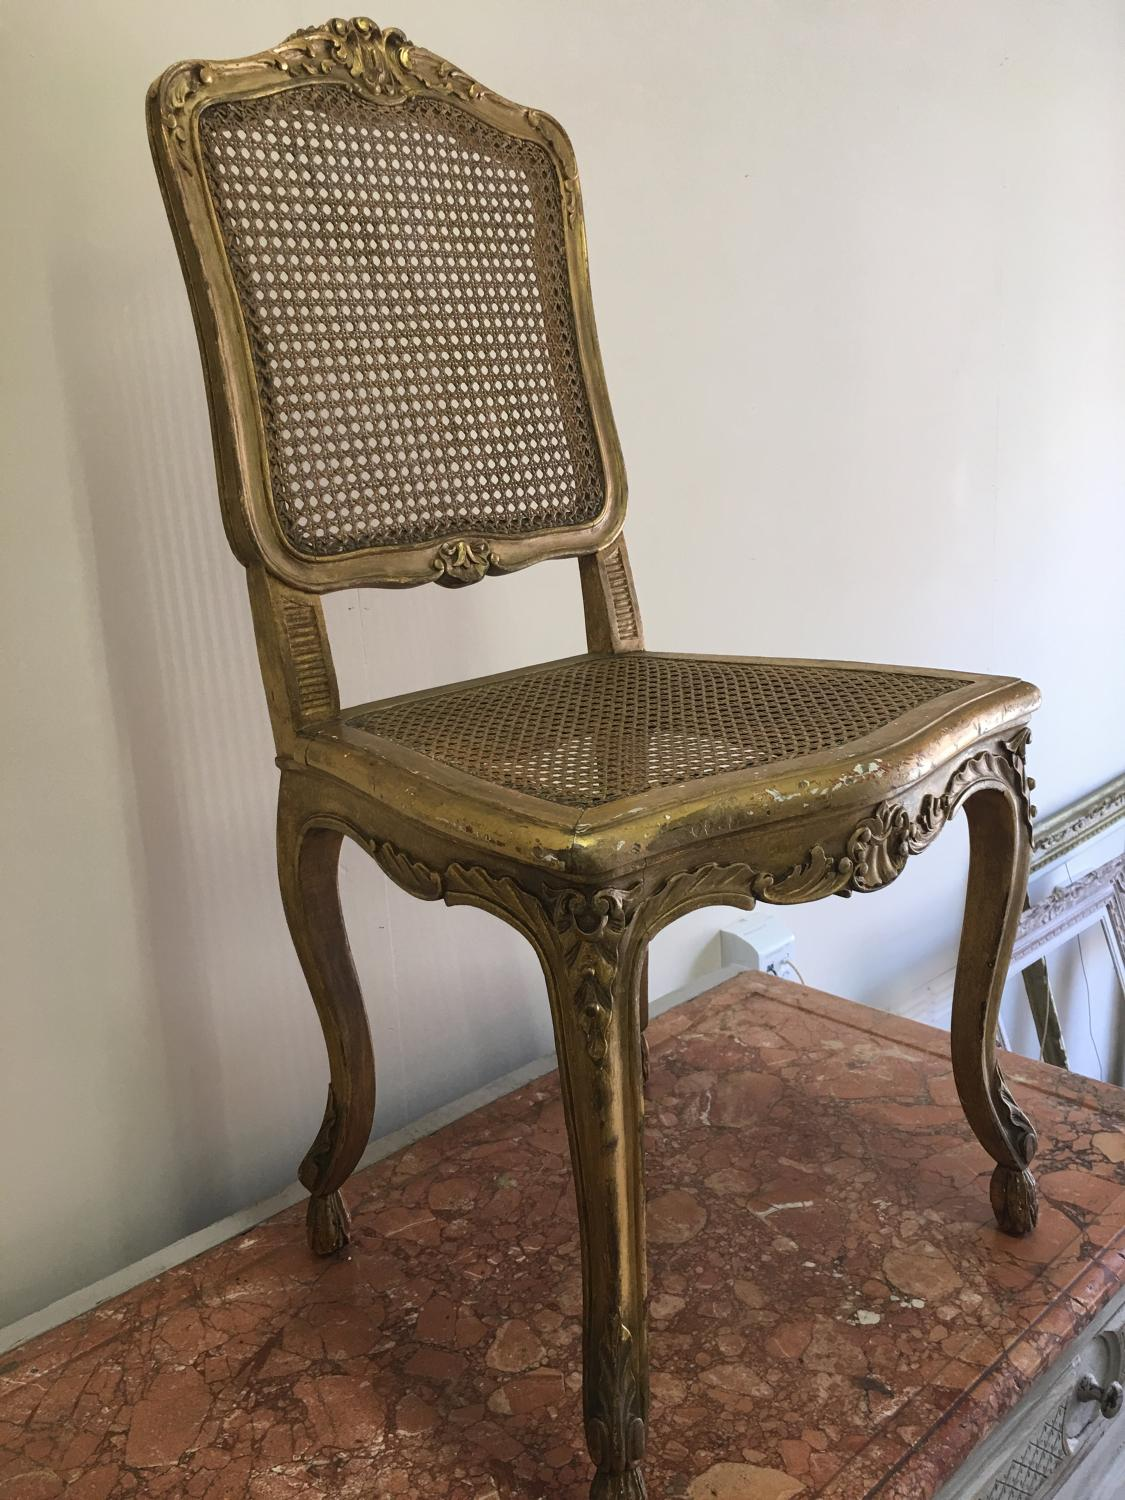 Antique French gilded chair 19th century